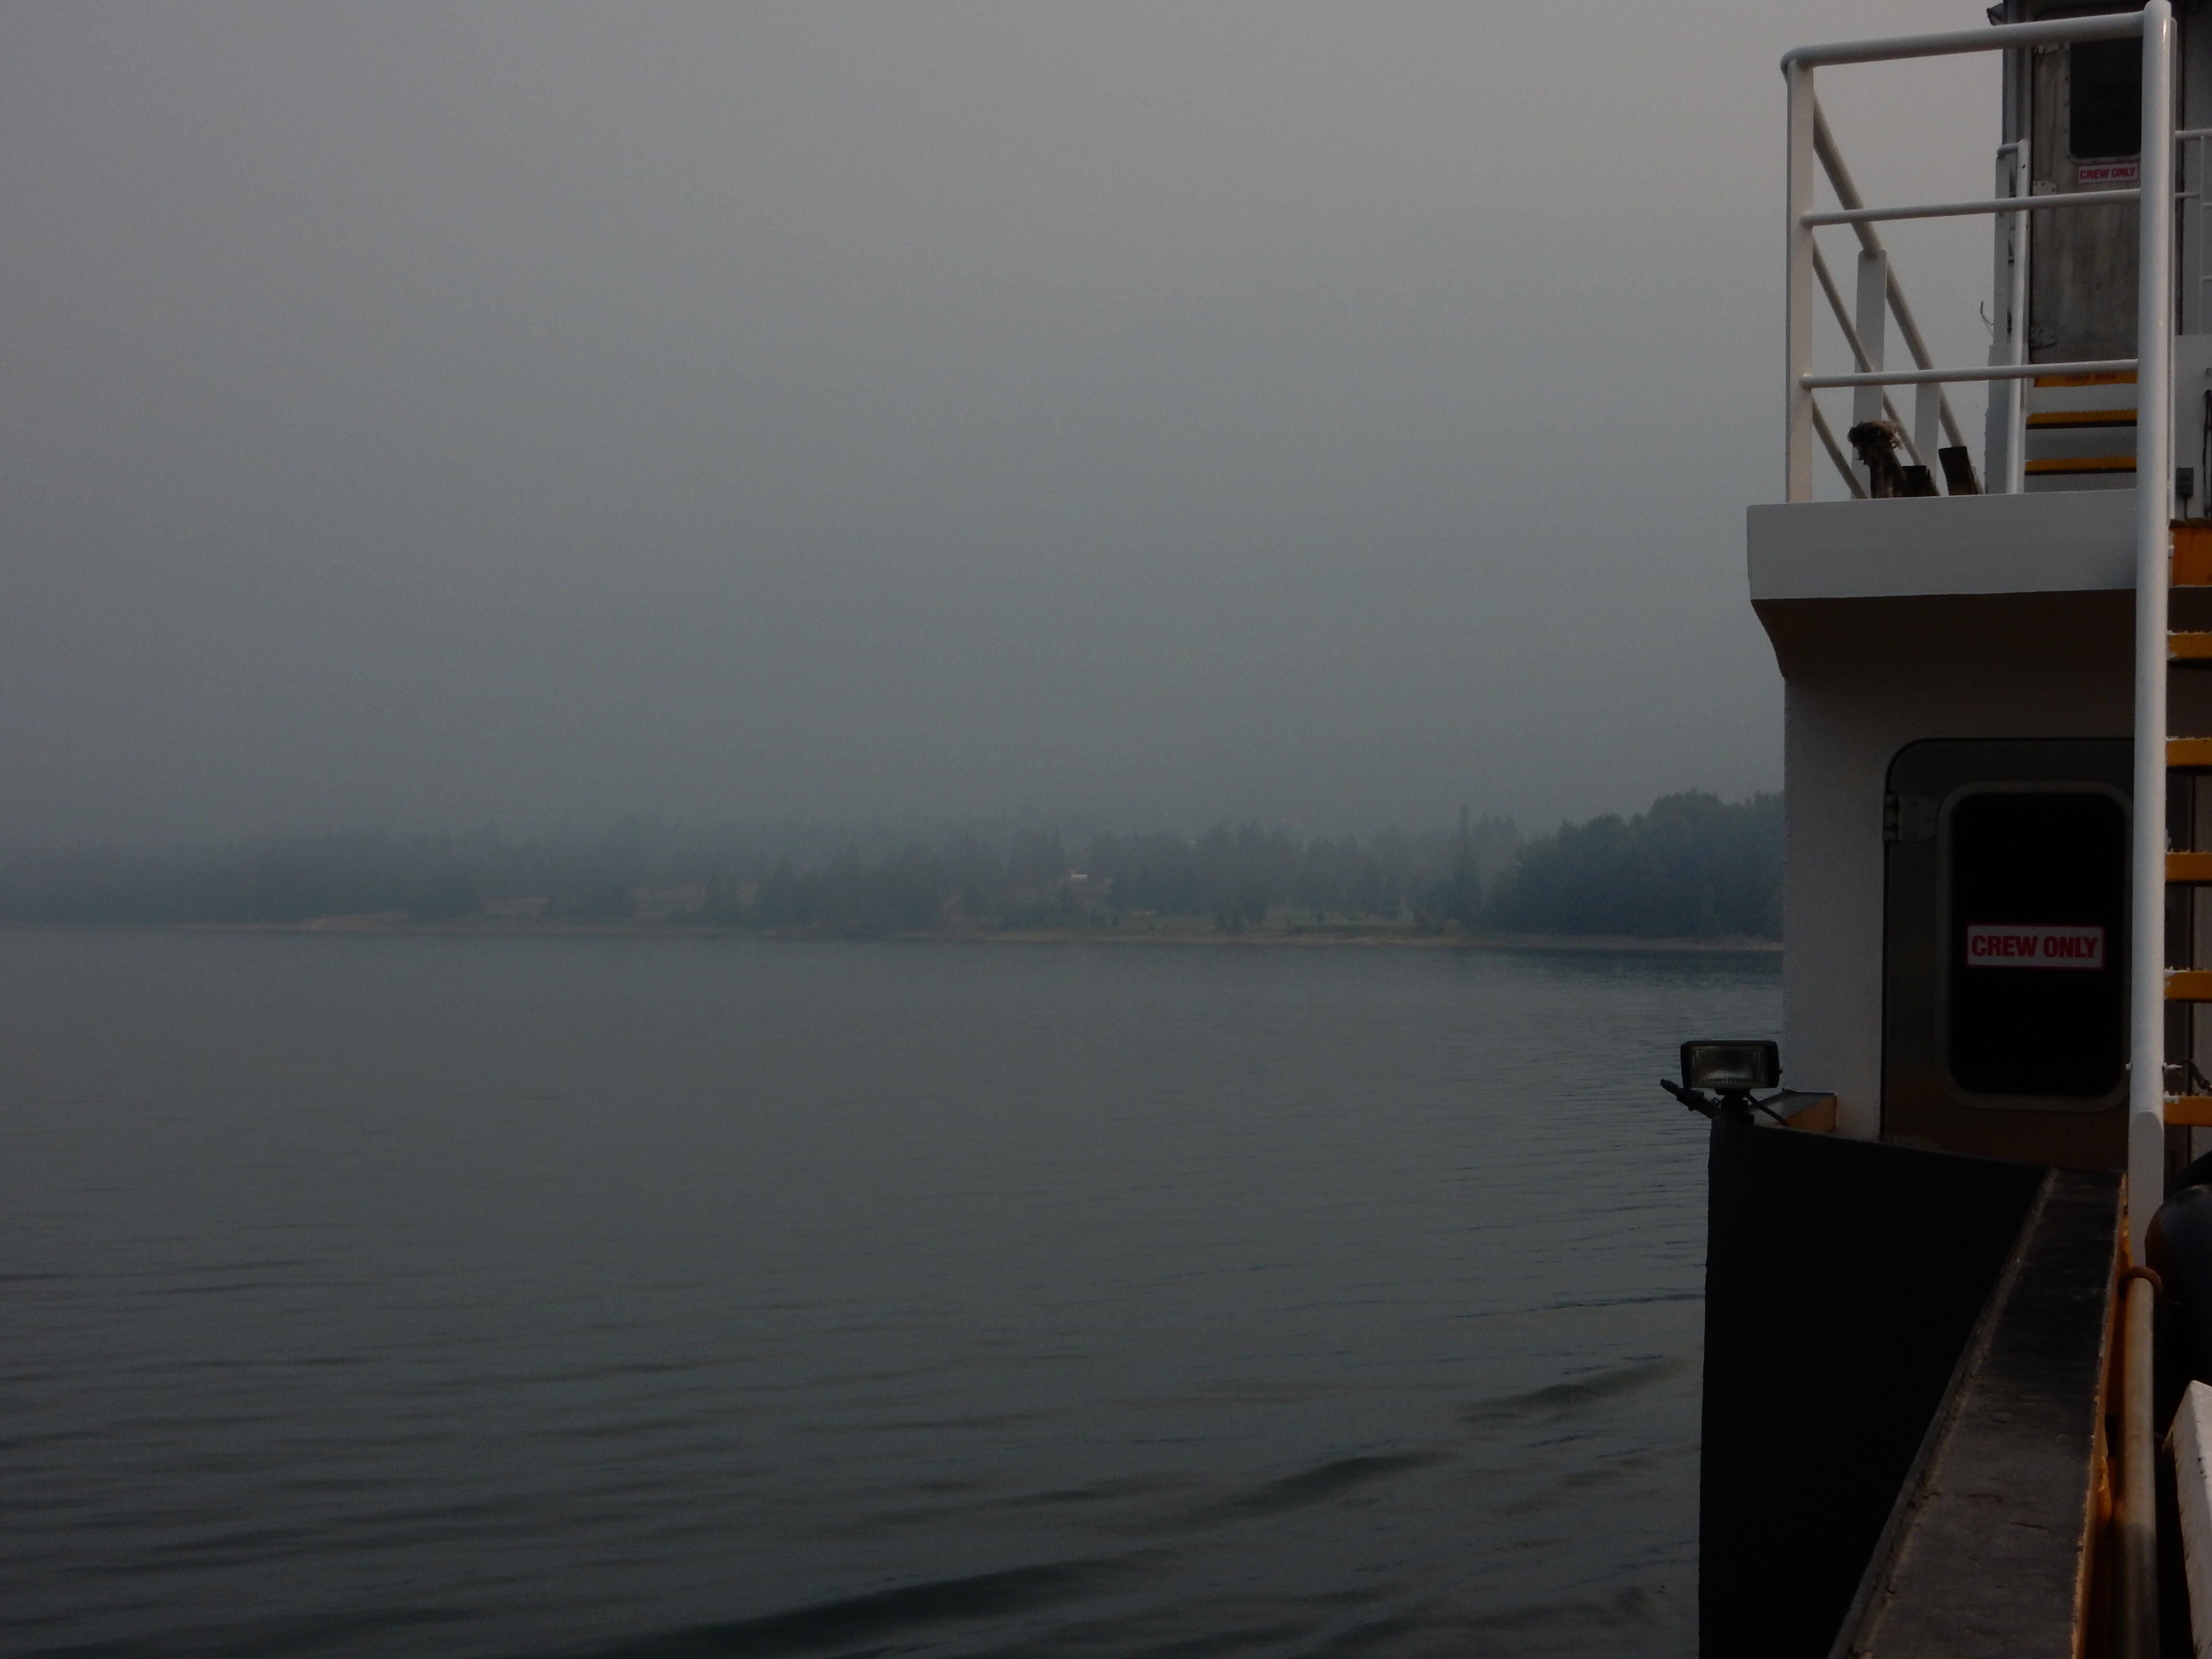 Looking east from the Needles ferry towards Fauquier, BC. That's not fog, it's smoke from all the wildfires.